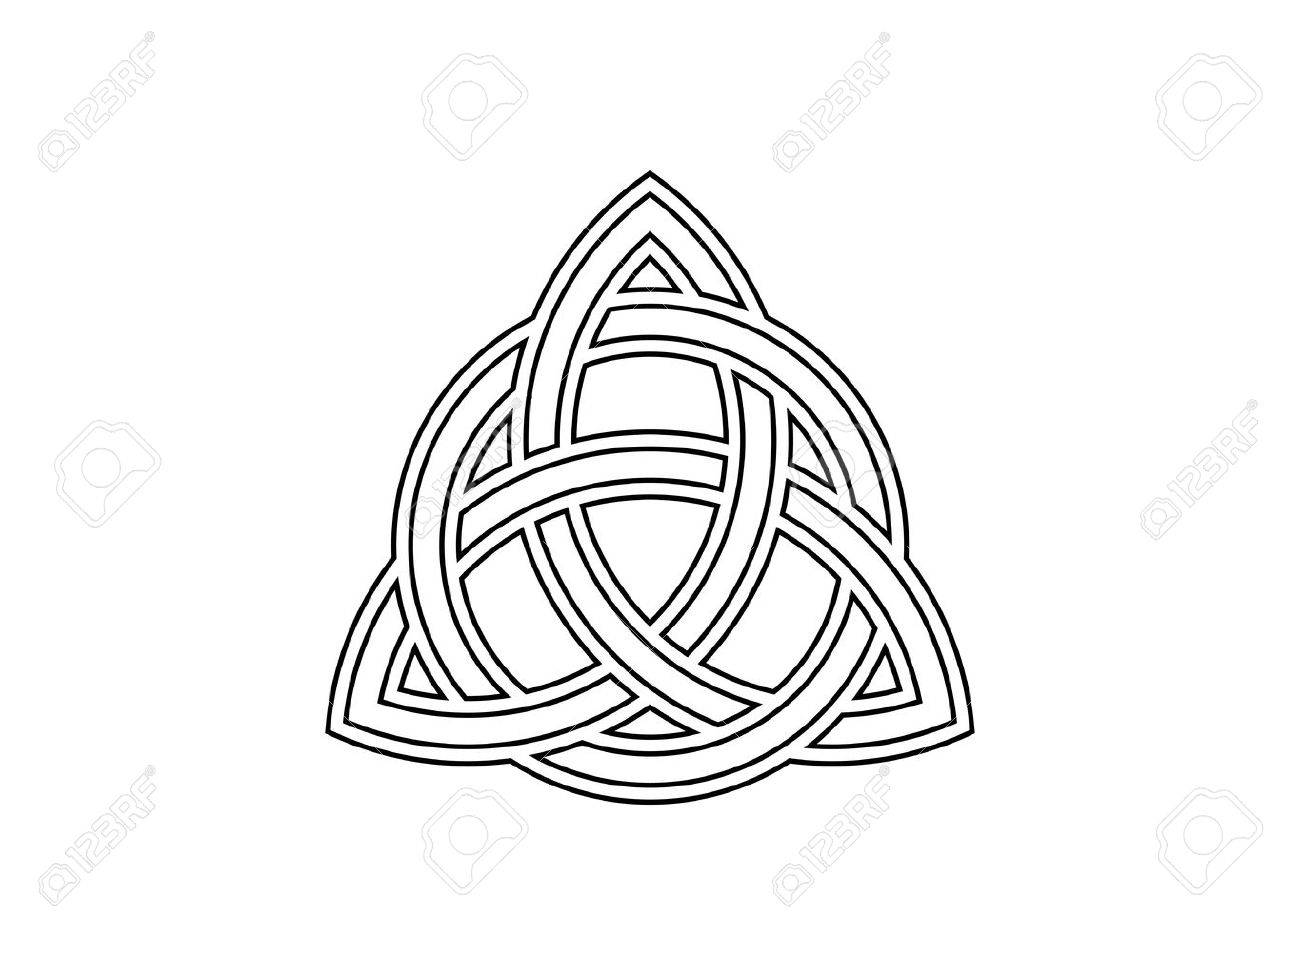 Triquetra trinity knot celtic symbol of eternity vector trinity knot celtic symbol of eternity vector illustration stock vector 85196552 buycottarizona Gallery